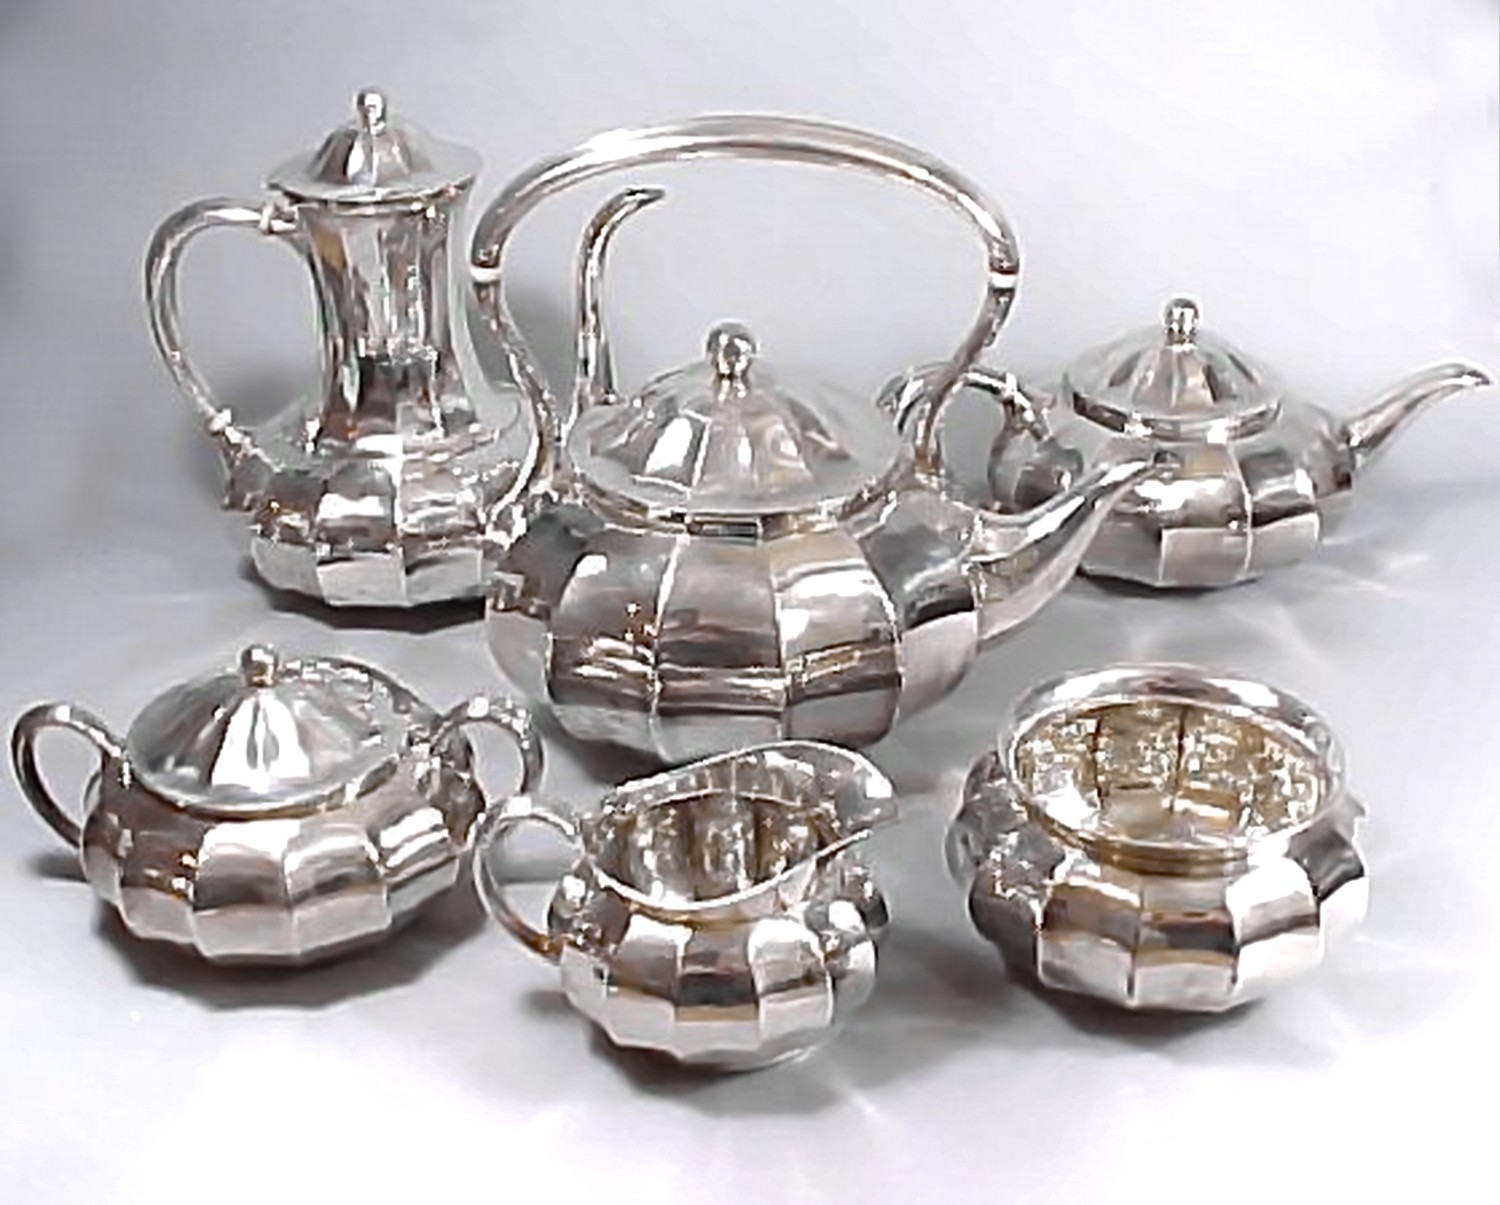 Rare Tiffany & Co 1907 6 pc Silver Tea Coffee Service Mellon Form